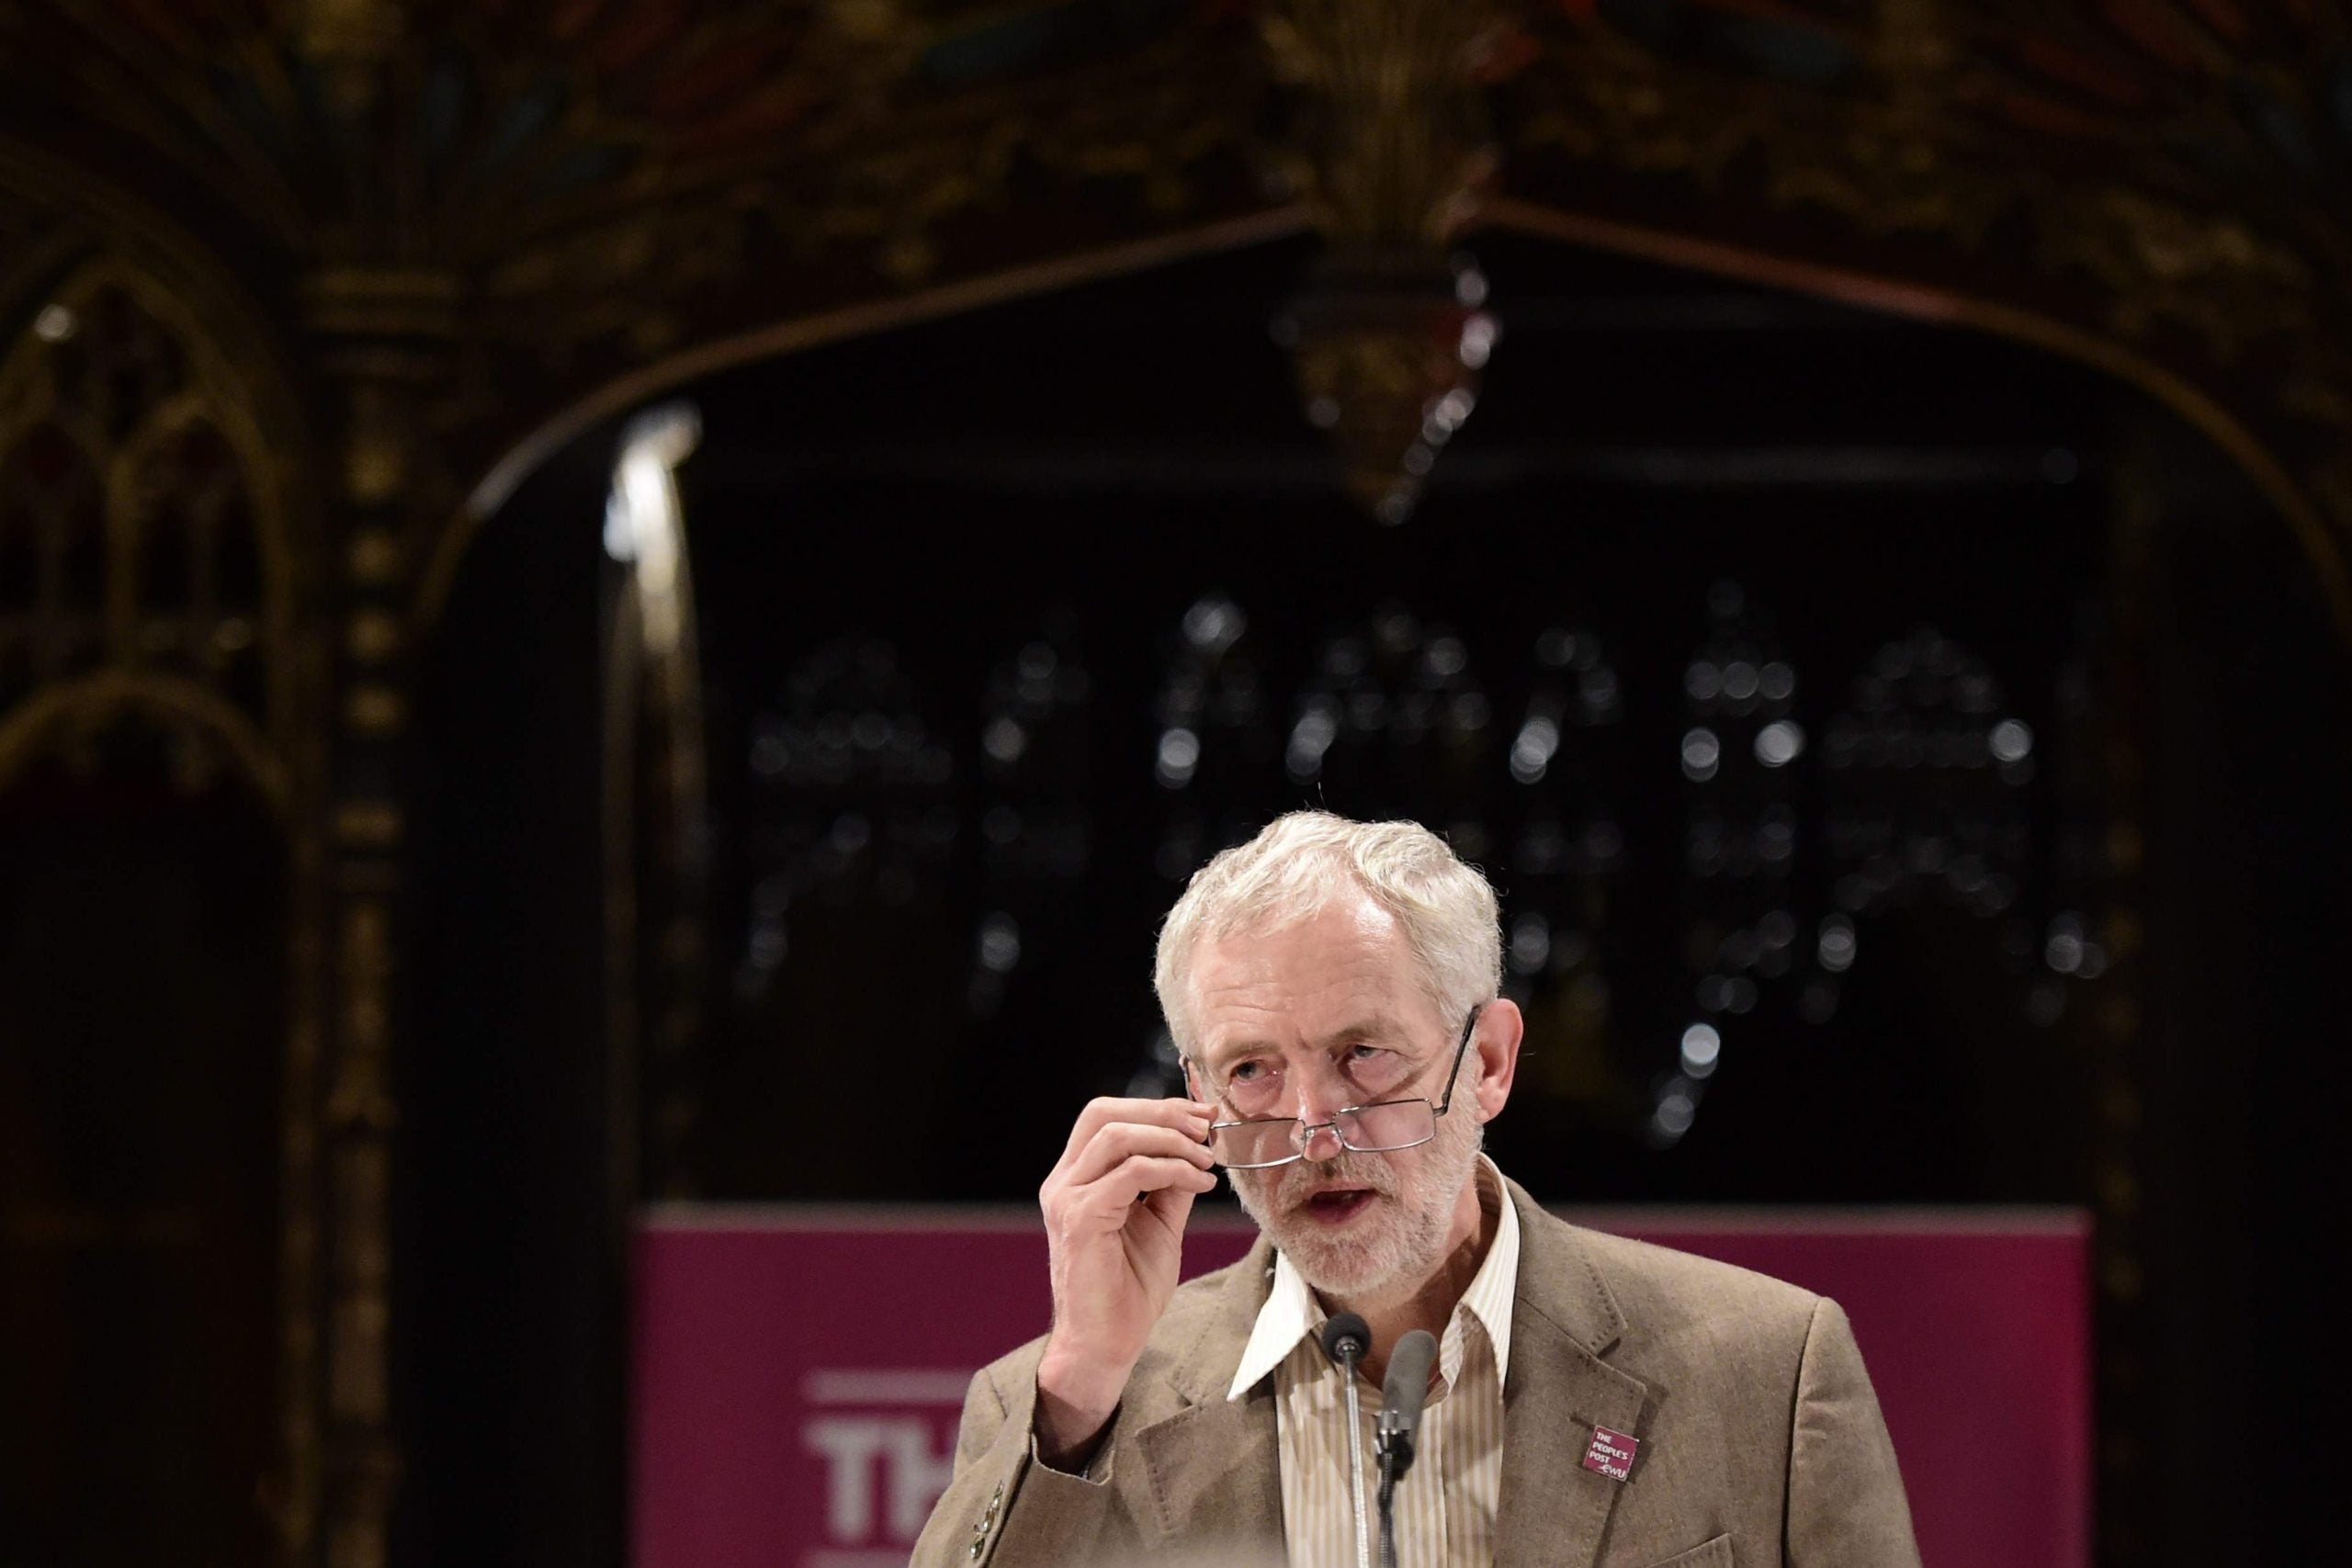 For all the uproar among Labour MPs, Jeremy Corbyn is going nowhere